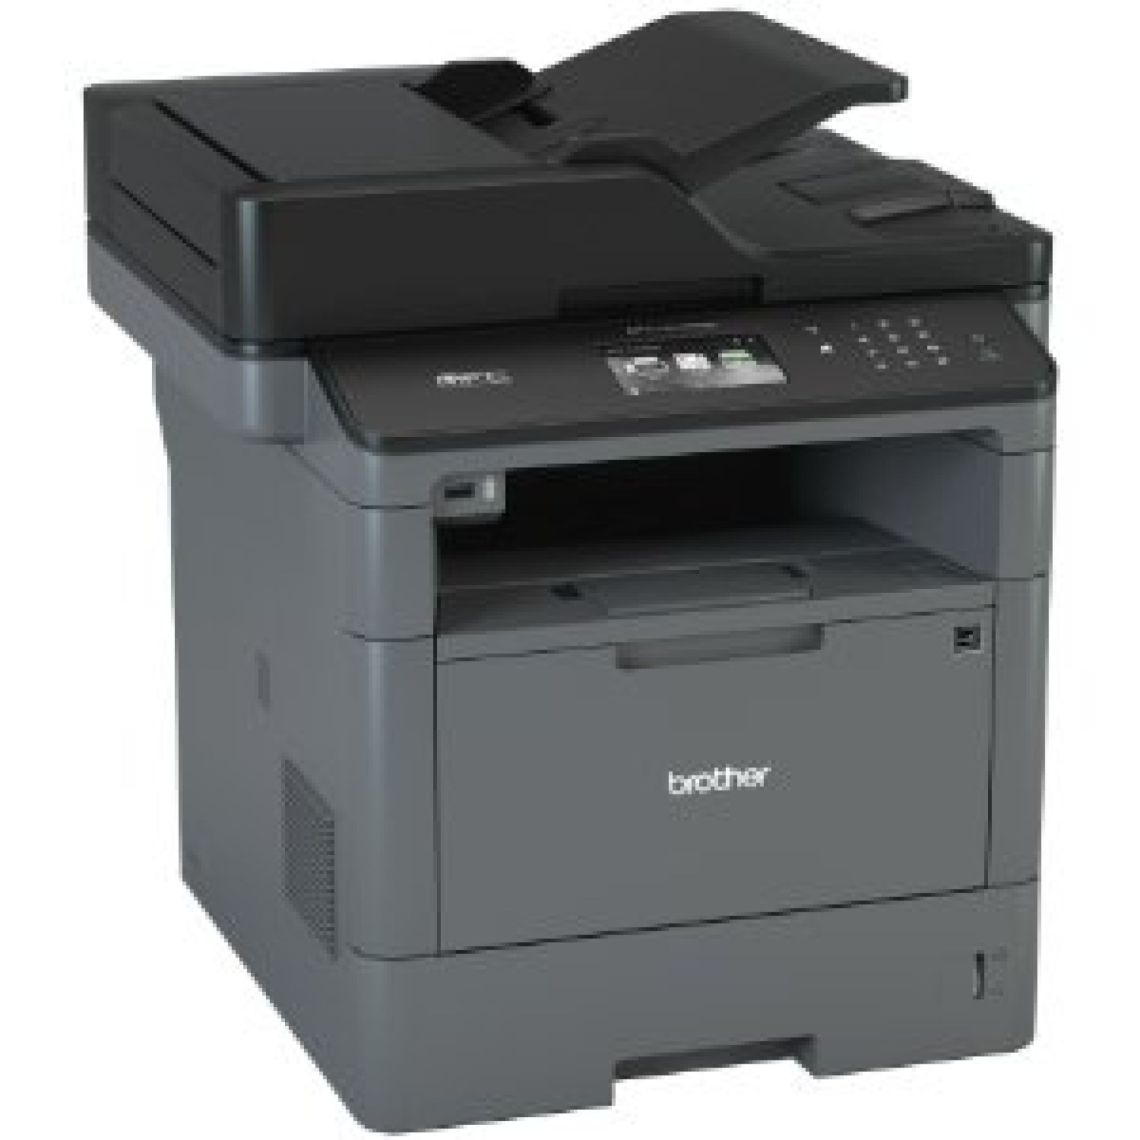 Amazon.com: Brother Monochrome Laser Multifunction All-in-One Printer, MFC-L5700DW, Flexible Network Connectivity, Mobile Printing & Scanning, Duplex Printing, Amazon Dash Replenishment Enabled: Electronics